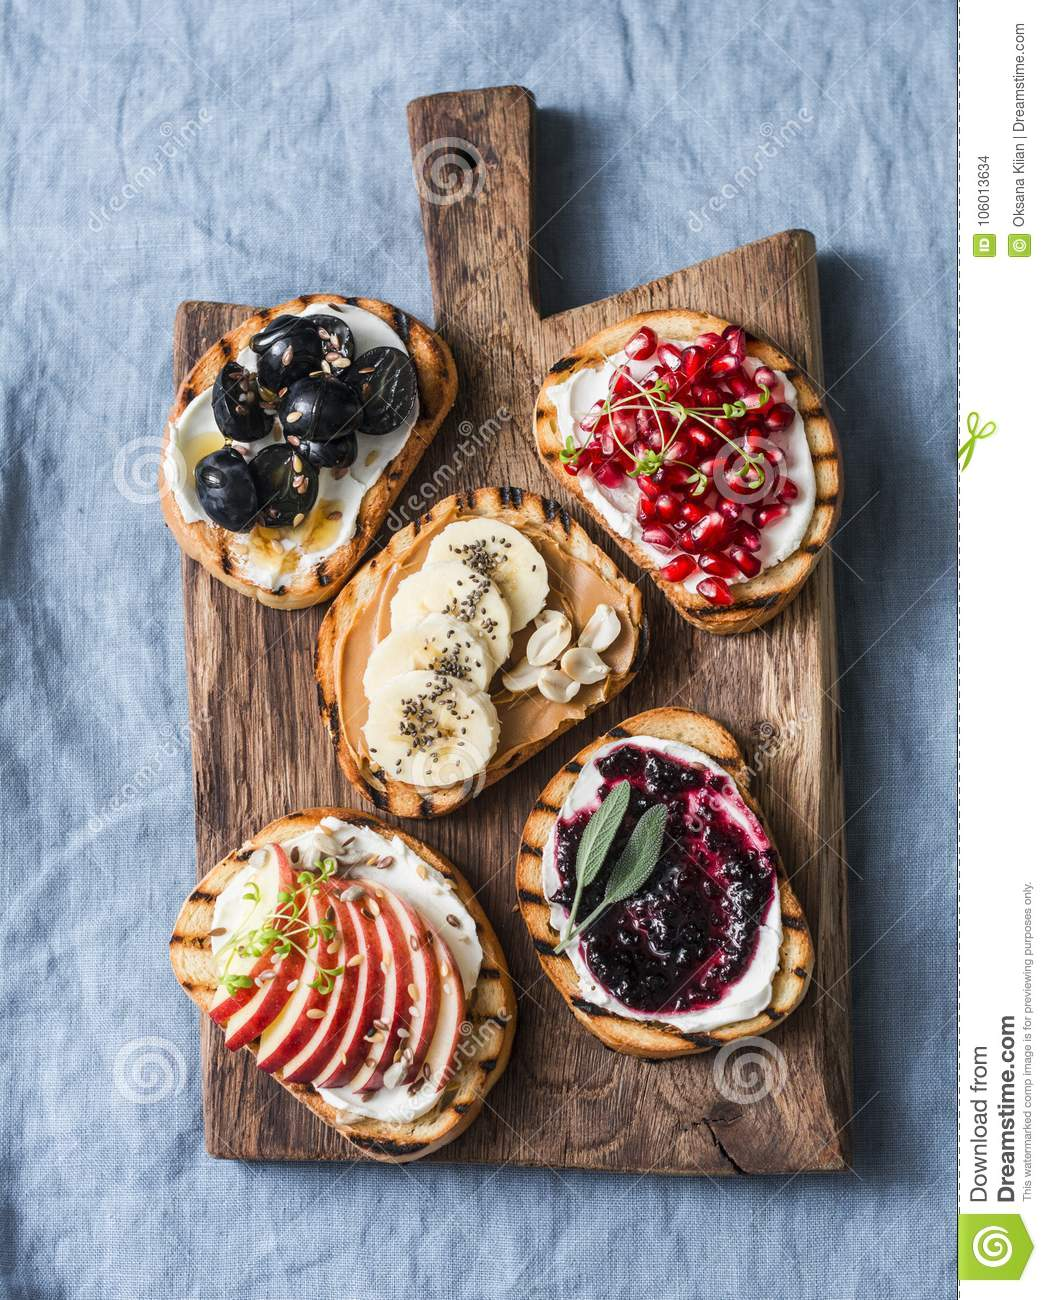 Variety grilled bread dessert sandwiches with cream cheese and apple, pomegranate, jam, grapes, peanut butter, banana, flax seed,